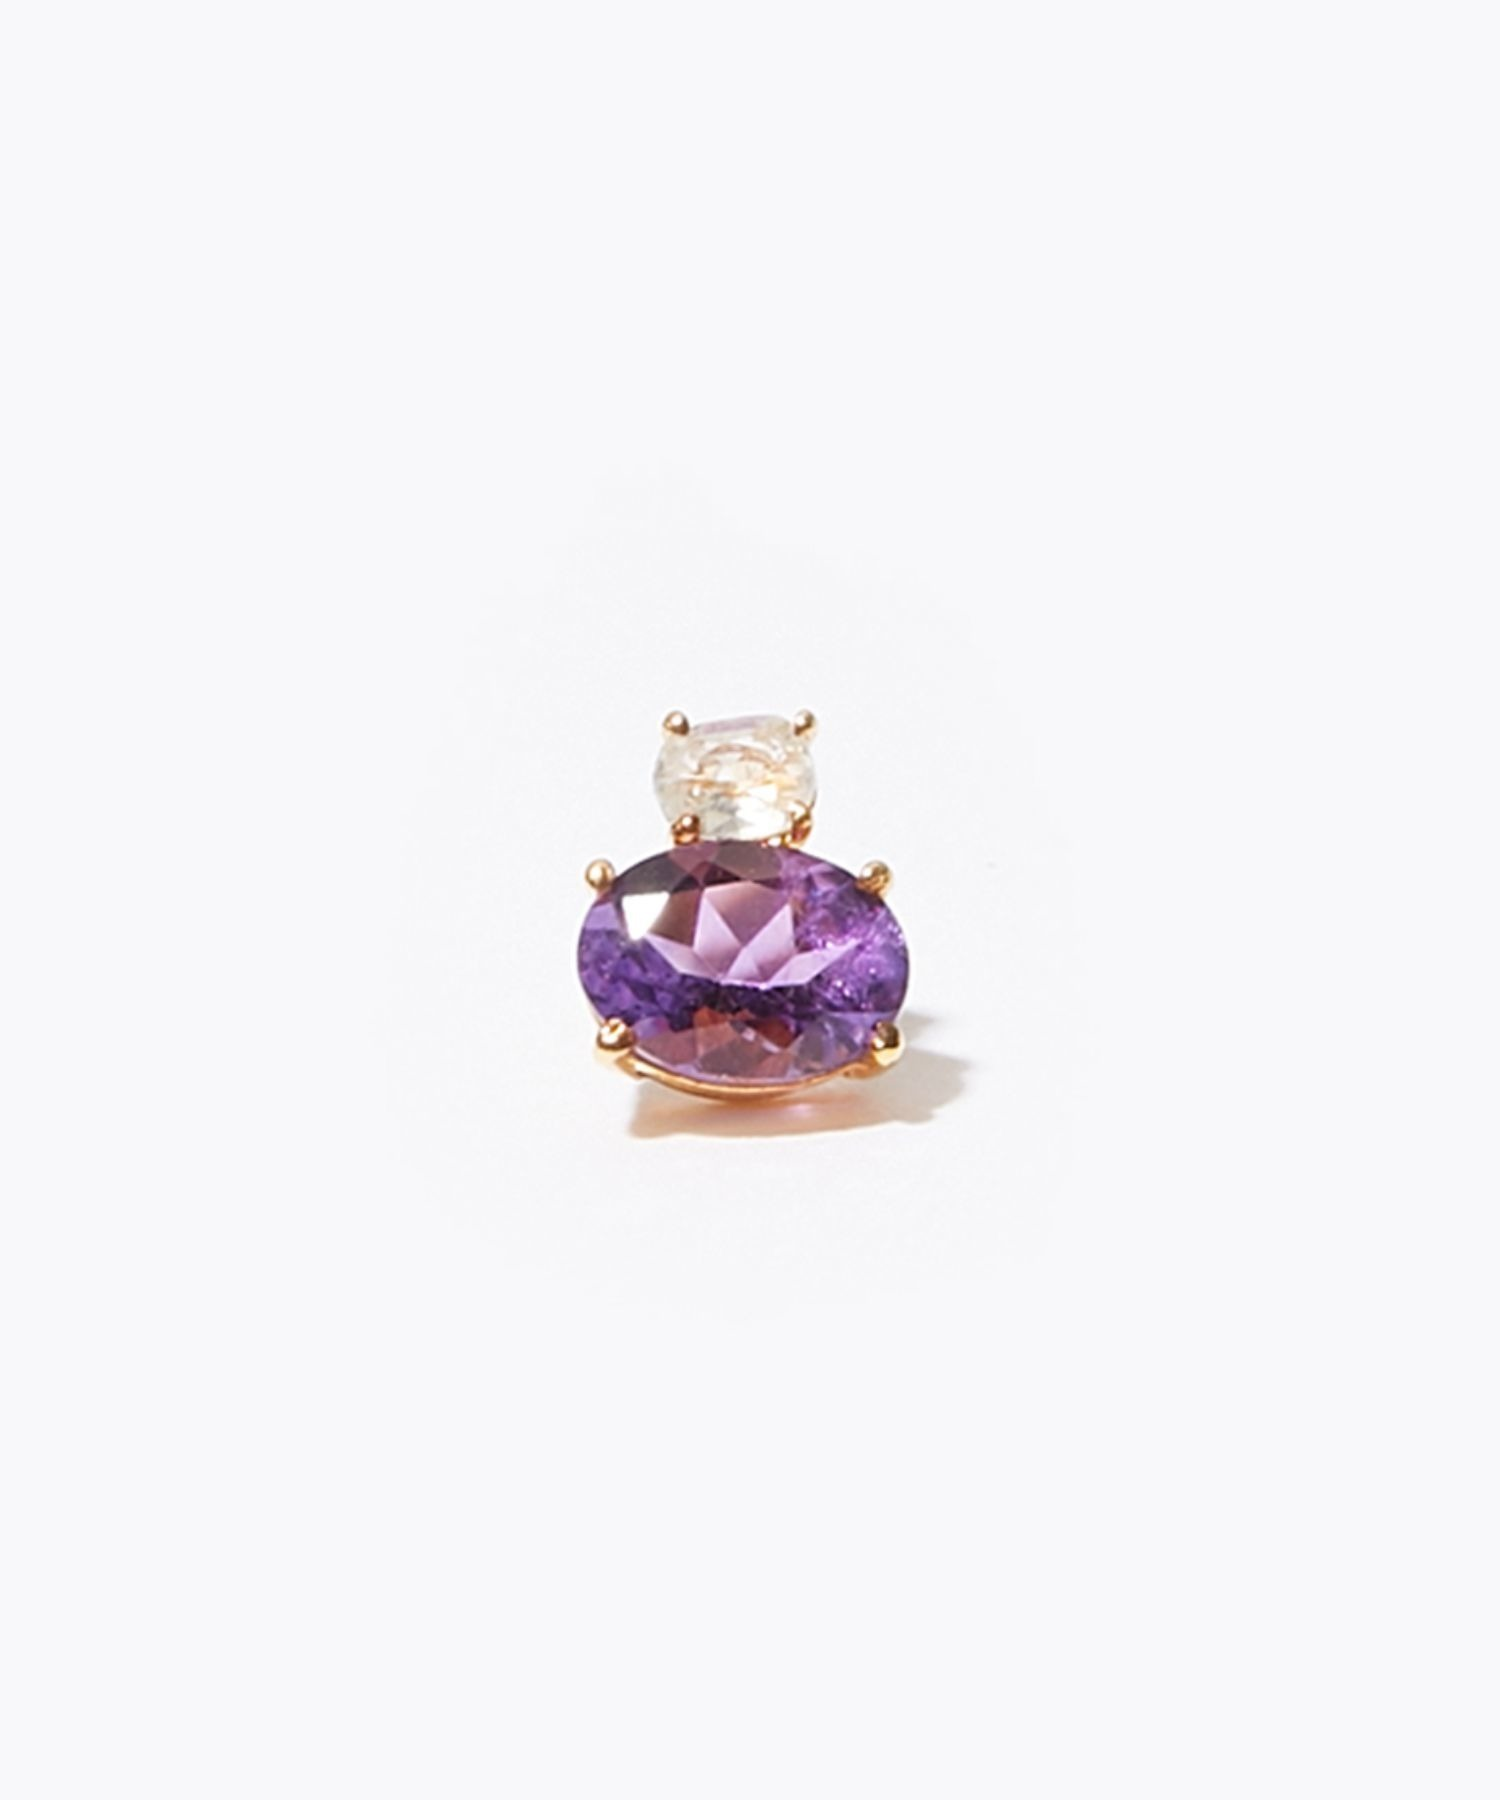 [eden] K10 amethyst and green quartz stud pierced earring